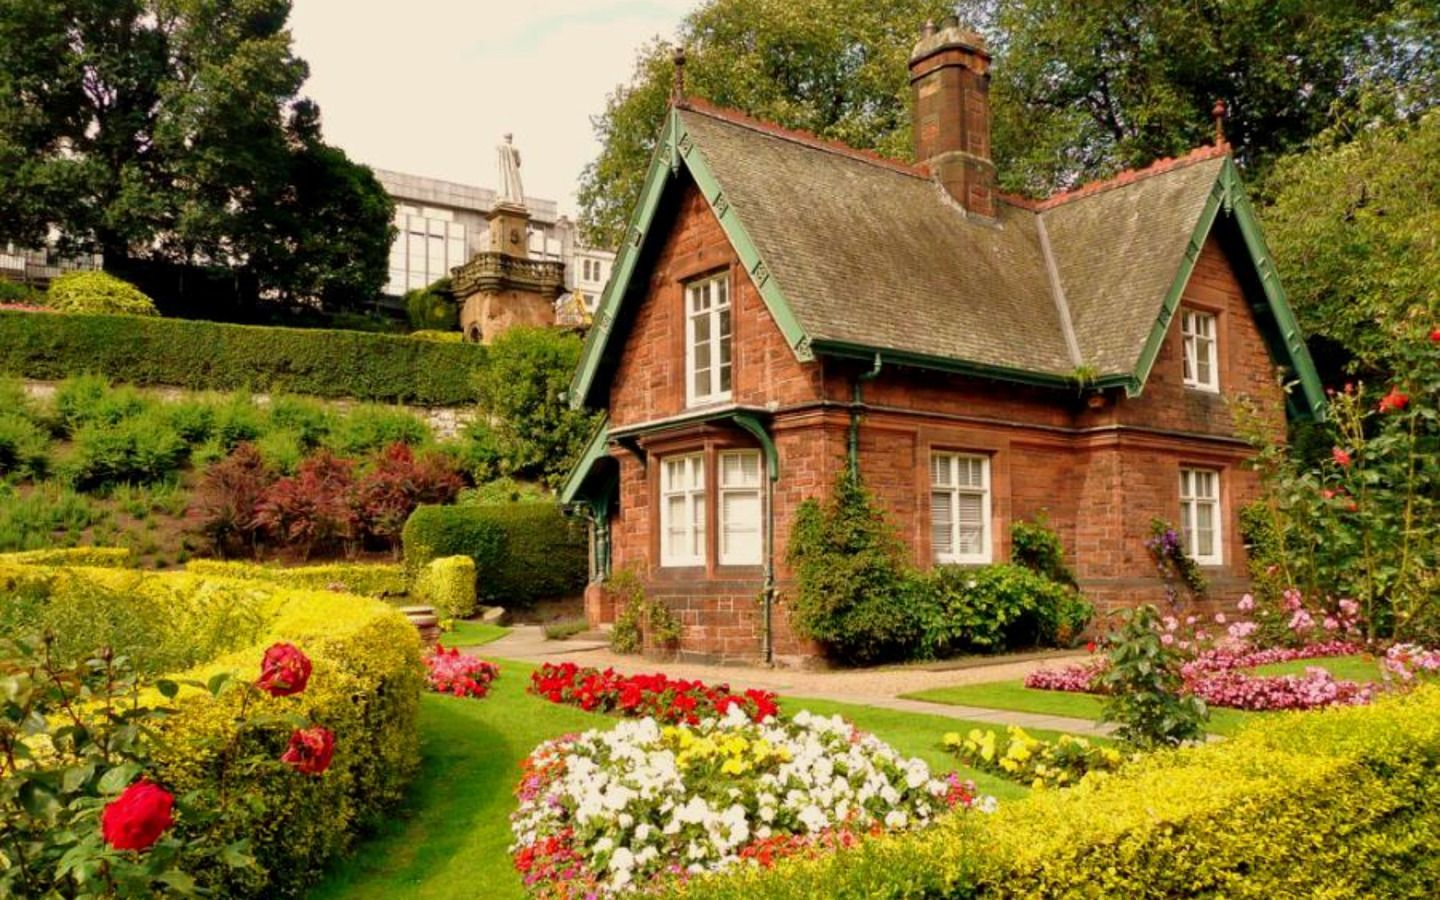 Small English Cottages | Small English Cottages Not Quite So Idyllic As This Little